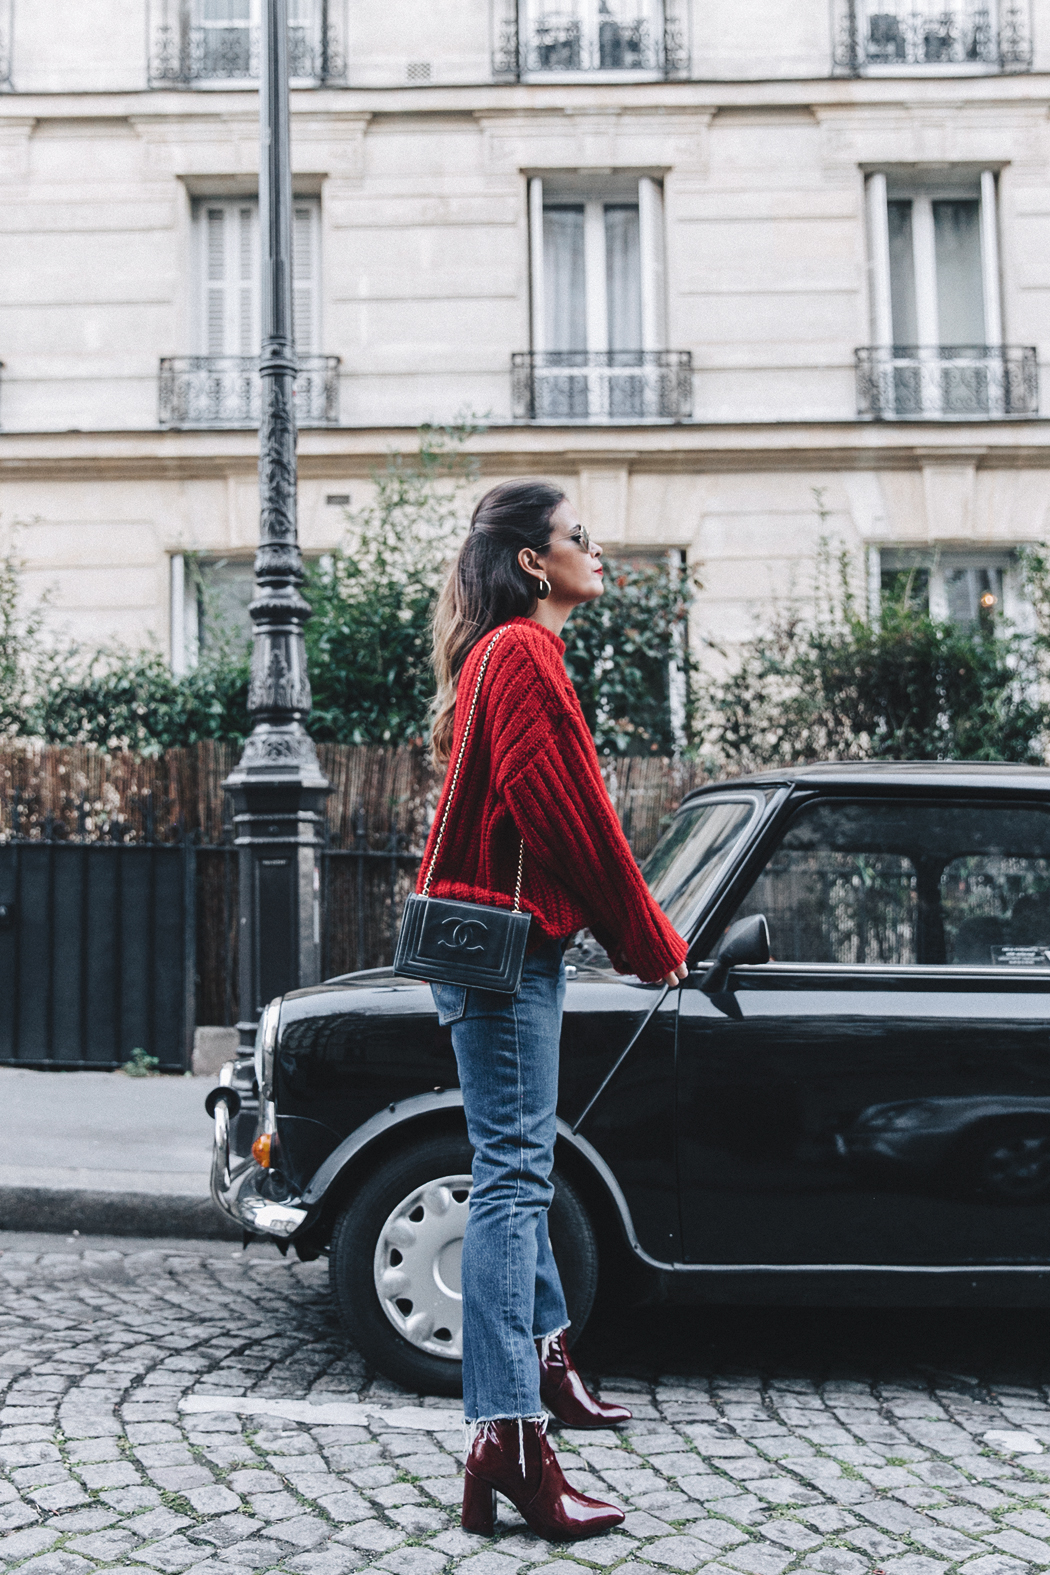 RED-KNITWEAR-Levis-Jeans-Red_Boots-Outfit-Street_Style-Levis_Vintage-34